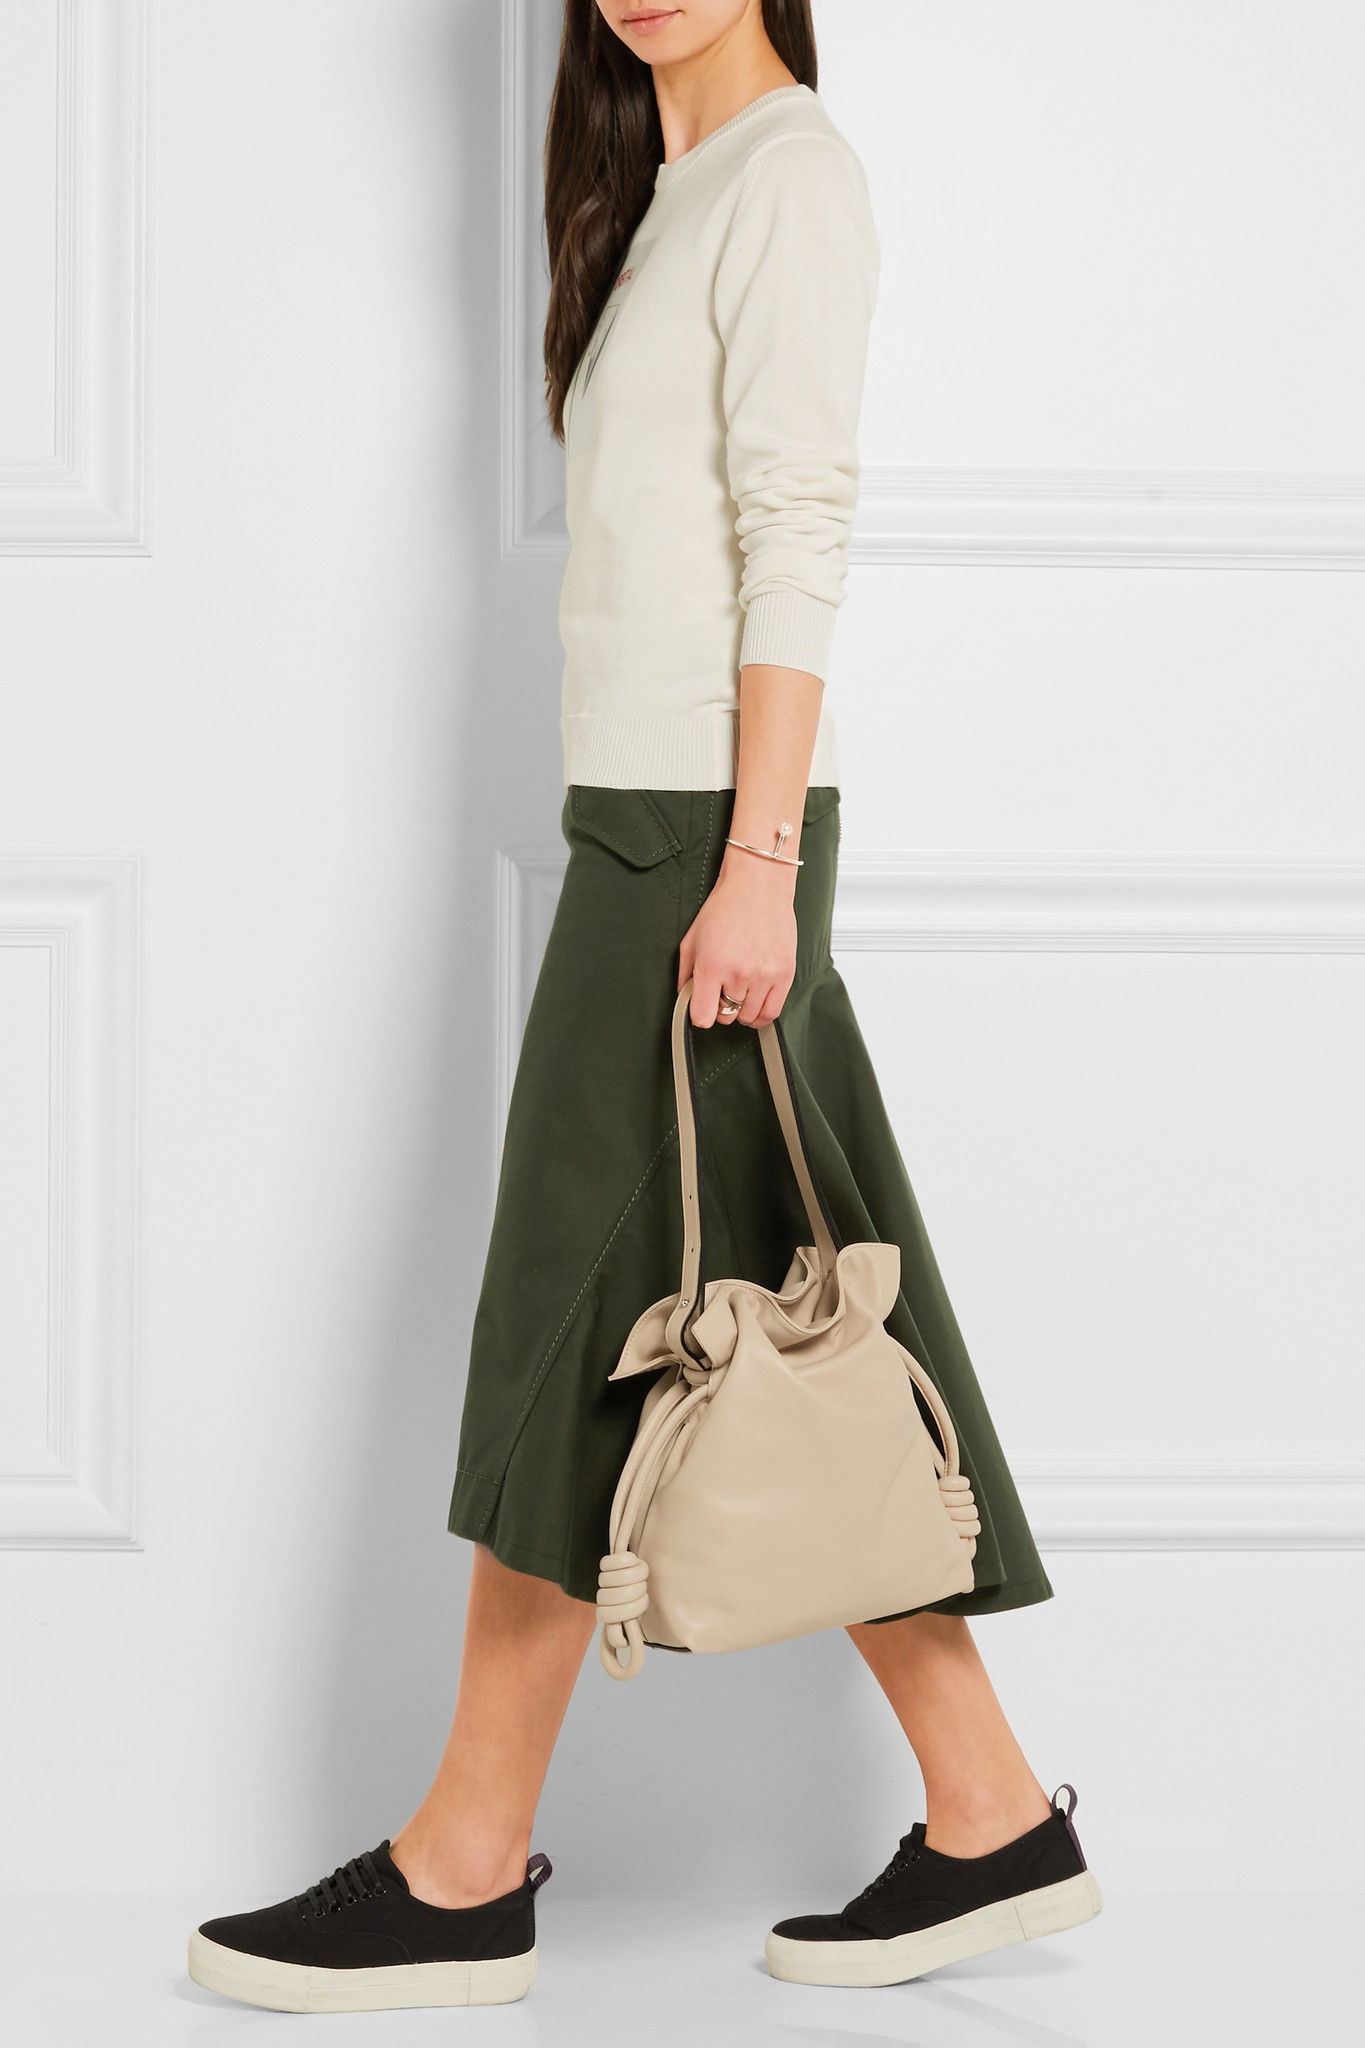 6182081dbacd Loewe Flamenco Knot Small Leather Shoulder Bag in Natural - Lyst